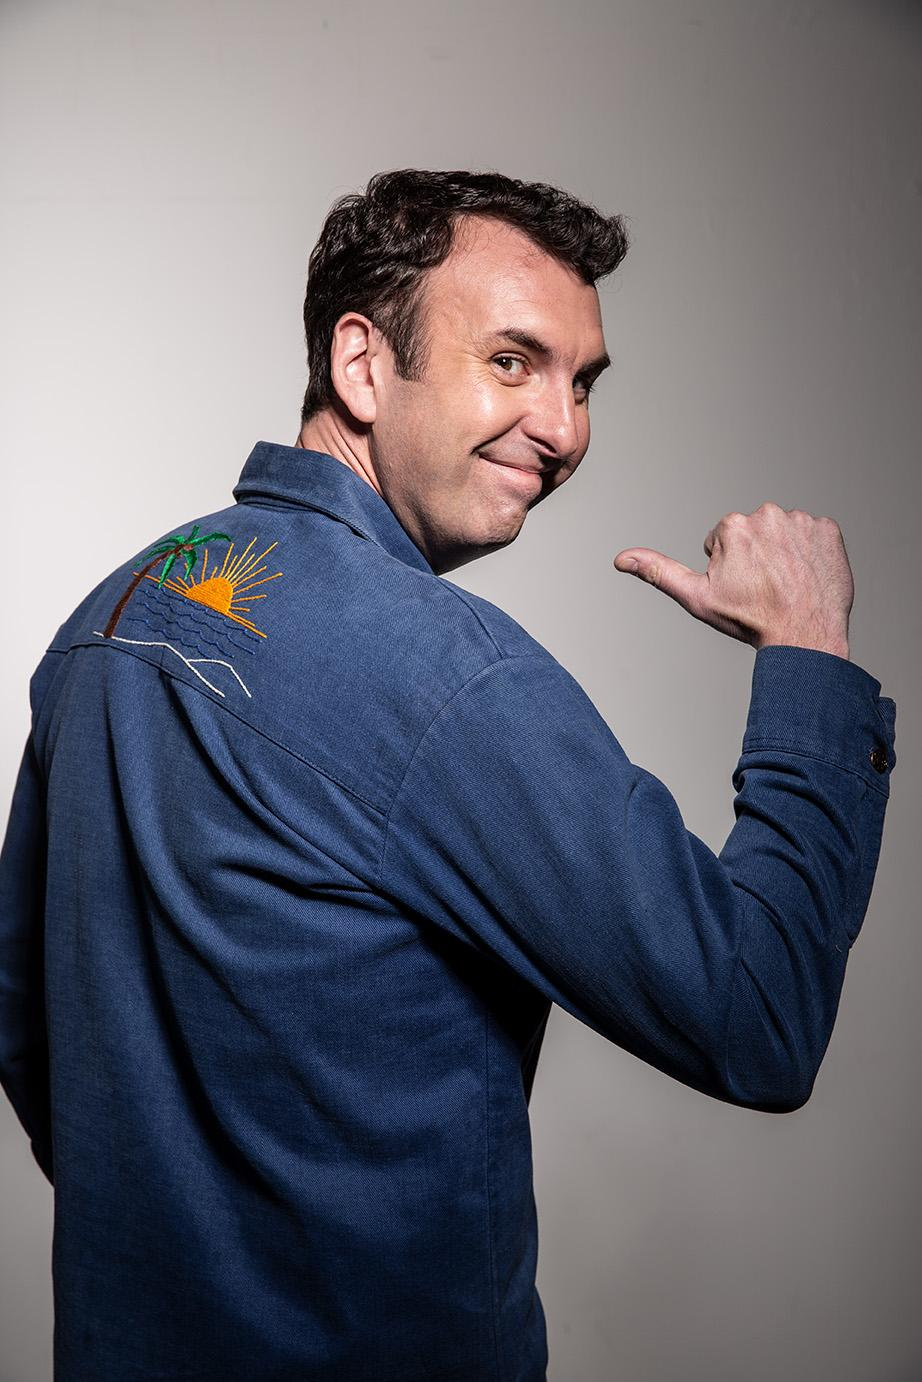 What Does Sms Stand For >> 'Try things and fail': Comedian Matt Braunger proud to be ...